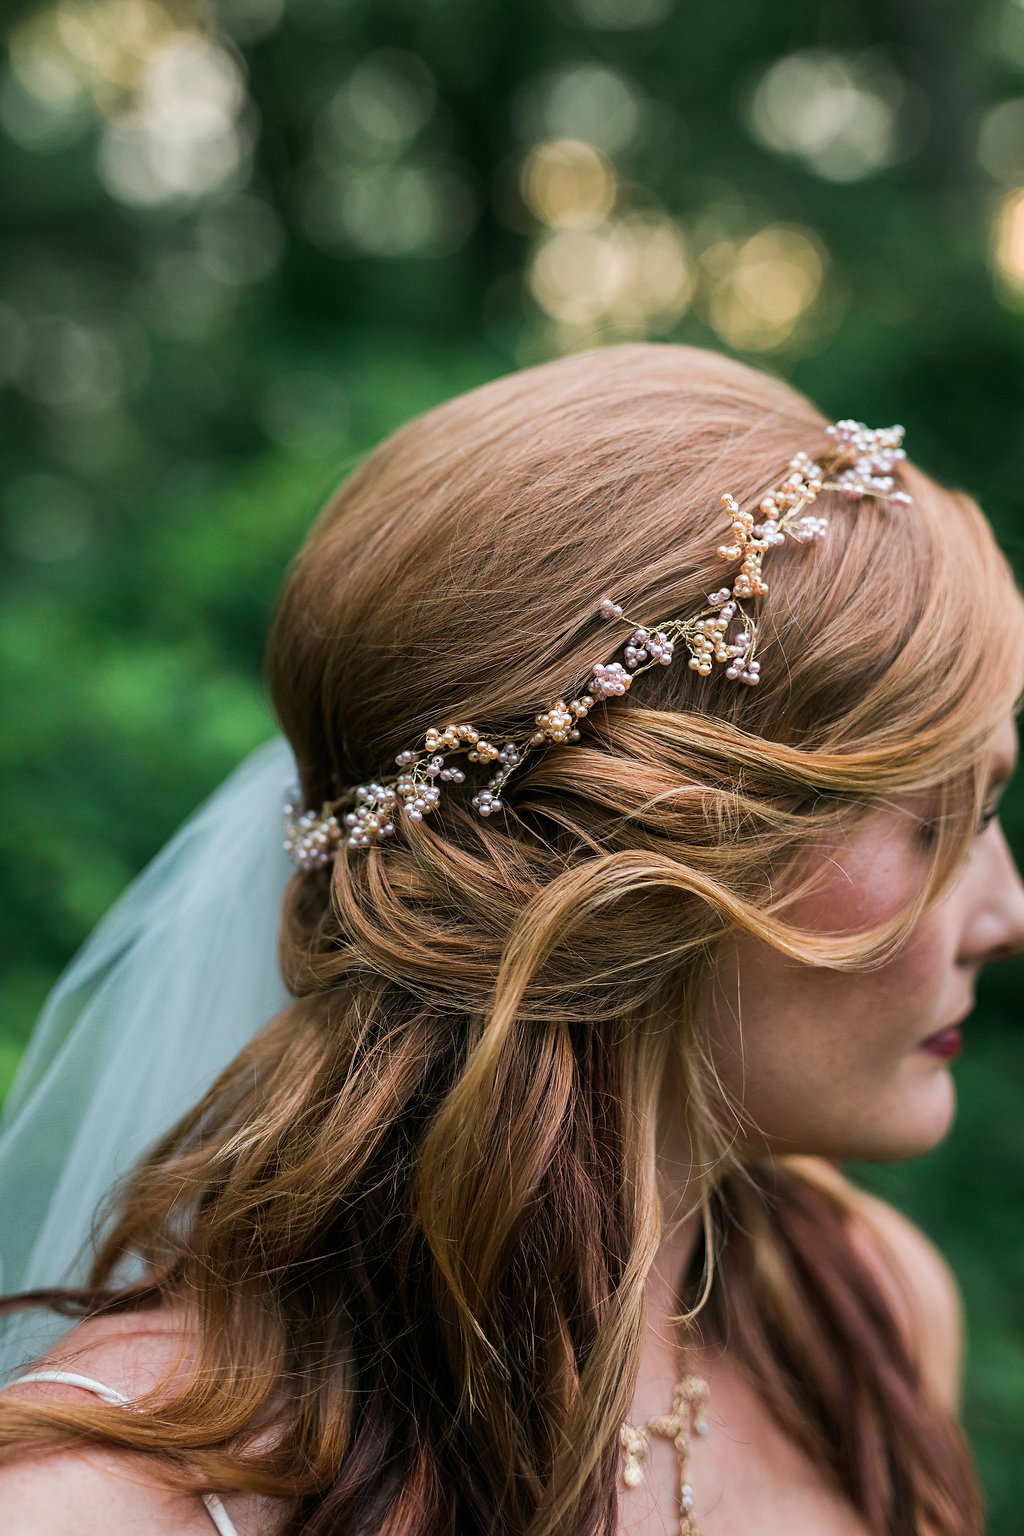 embellished wedding hair accessories - photo by Katie Ricard Photography https://ruffledblog.com/dramatic-woodland-wedding-inspiration-with-burgundy-accents